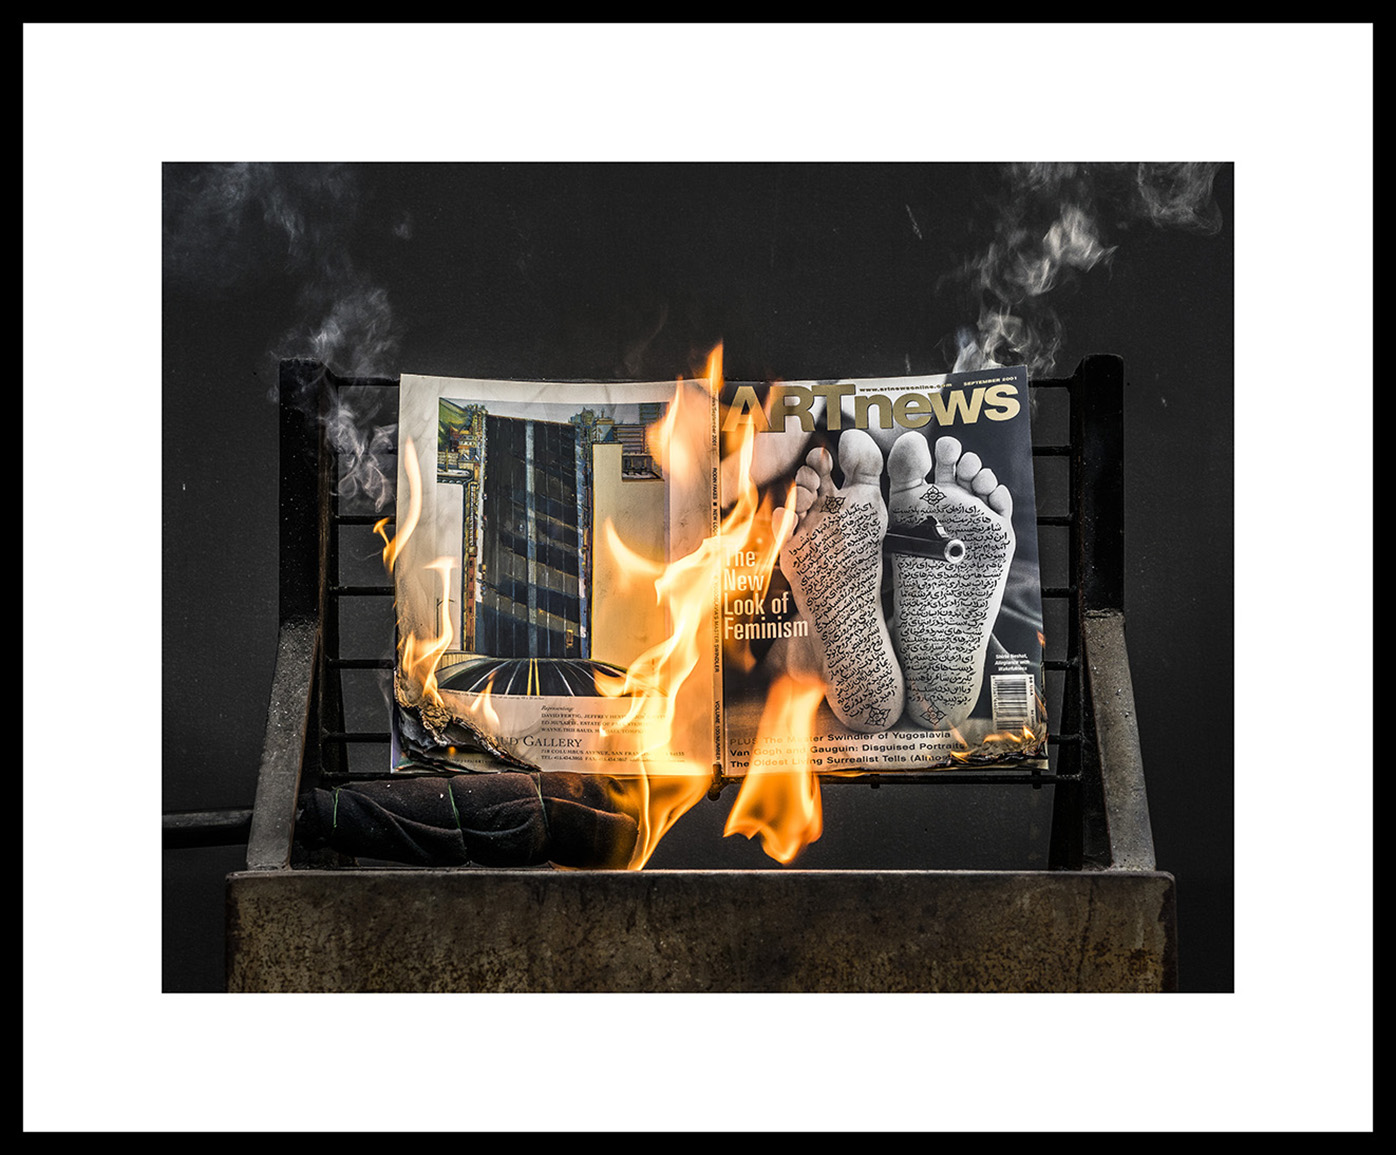 AN Dec 2001 #0844F, 2019   Archival ink jet print on Epson exhibition fiber paper Image: 18x24in, Paper: 24x30in, Frame: 25x31in, Edition of 5 with 2AP